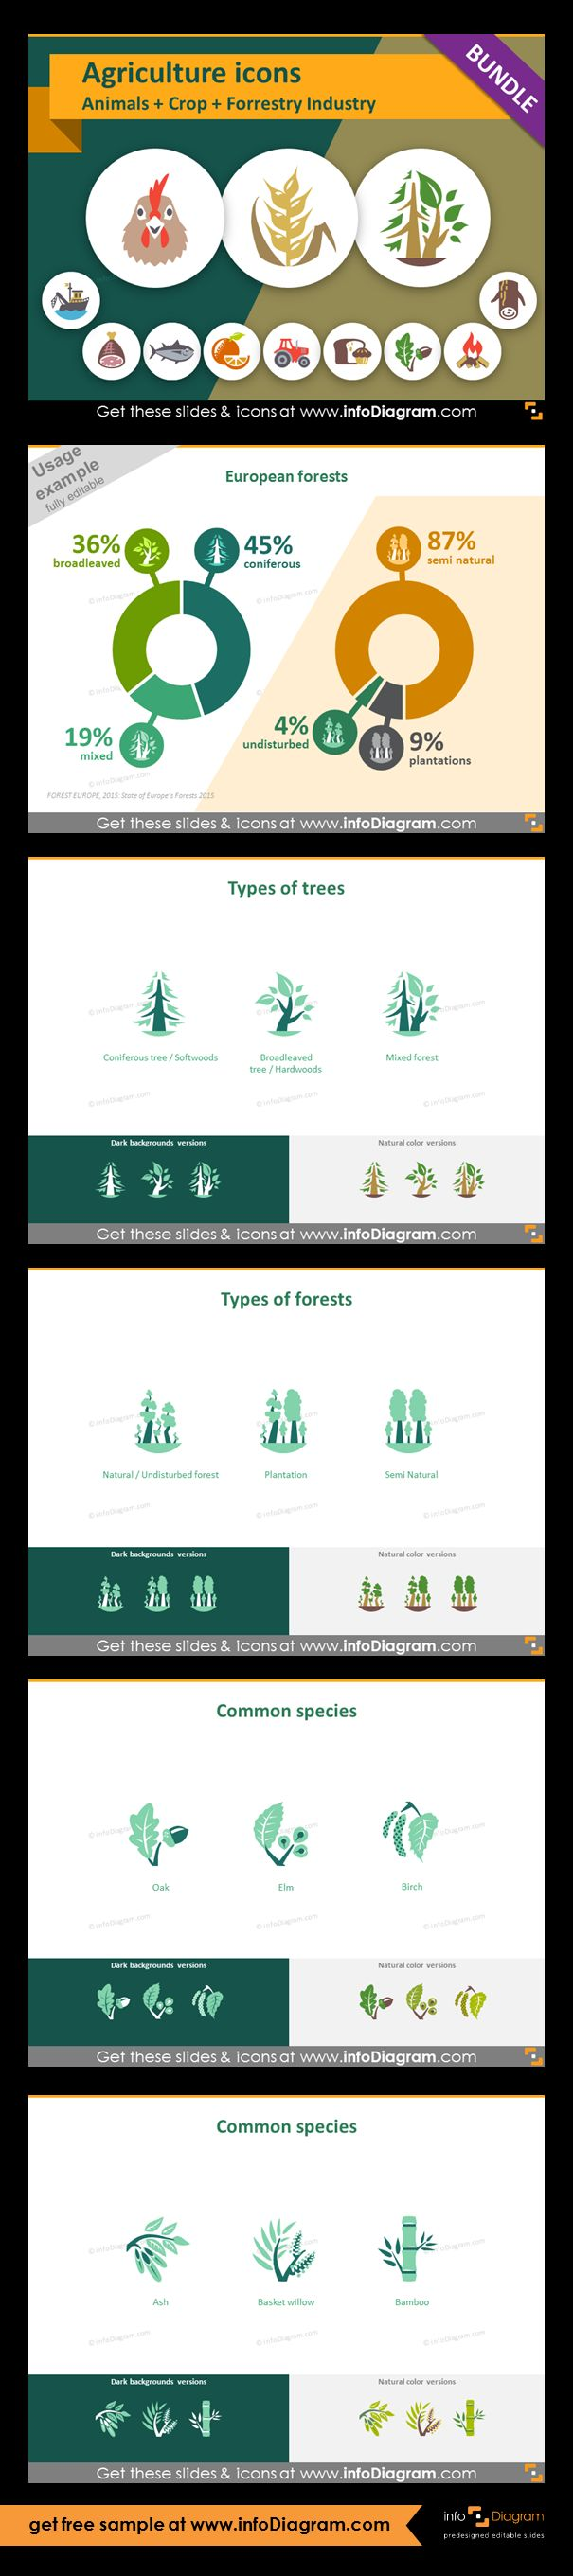 Food and Agriculture icons: Animals, Crop Cultivation, Forestry. All symbols in simple flat style, suitable for Metro UI style graphics. Icons provided in 5 versions. Statistics about European forests - chart. Icons showing types of trees and forests. Graphics of: softwoods, hardwoods, mixed forest, undisturbed forest, plantation, semi natural forest. Common species contain: oak, elm, birch, ash, basket willow, bamboo.